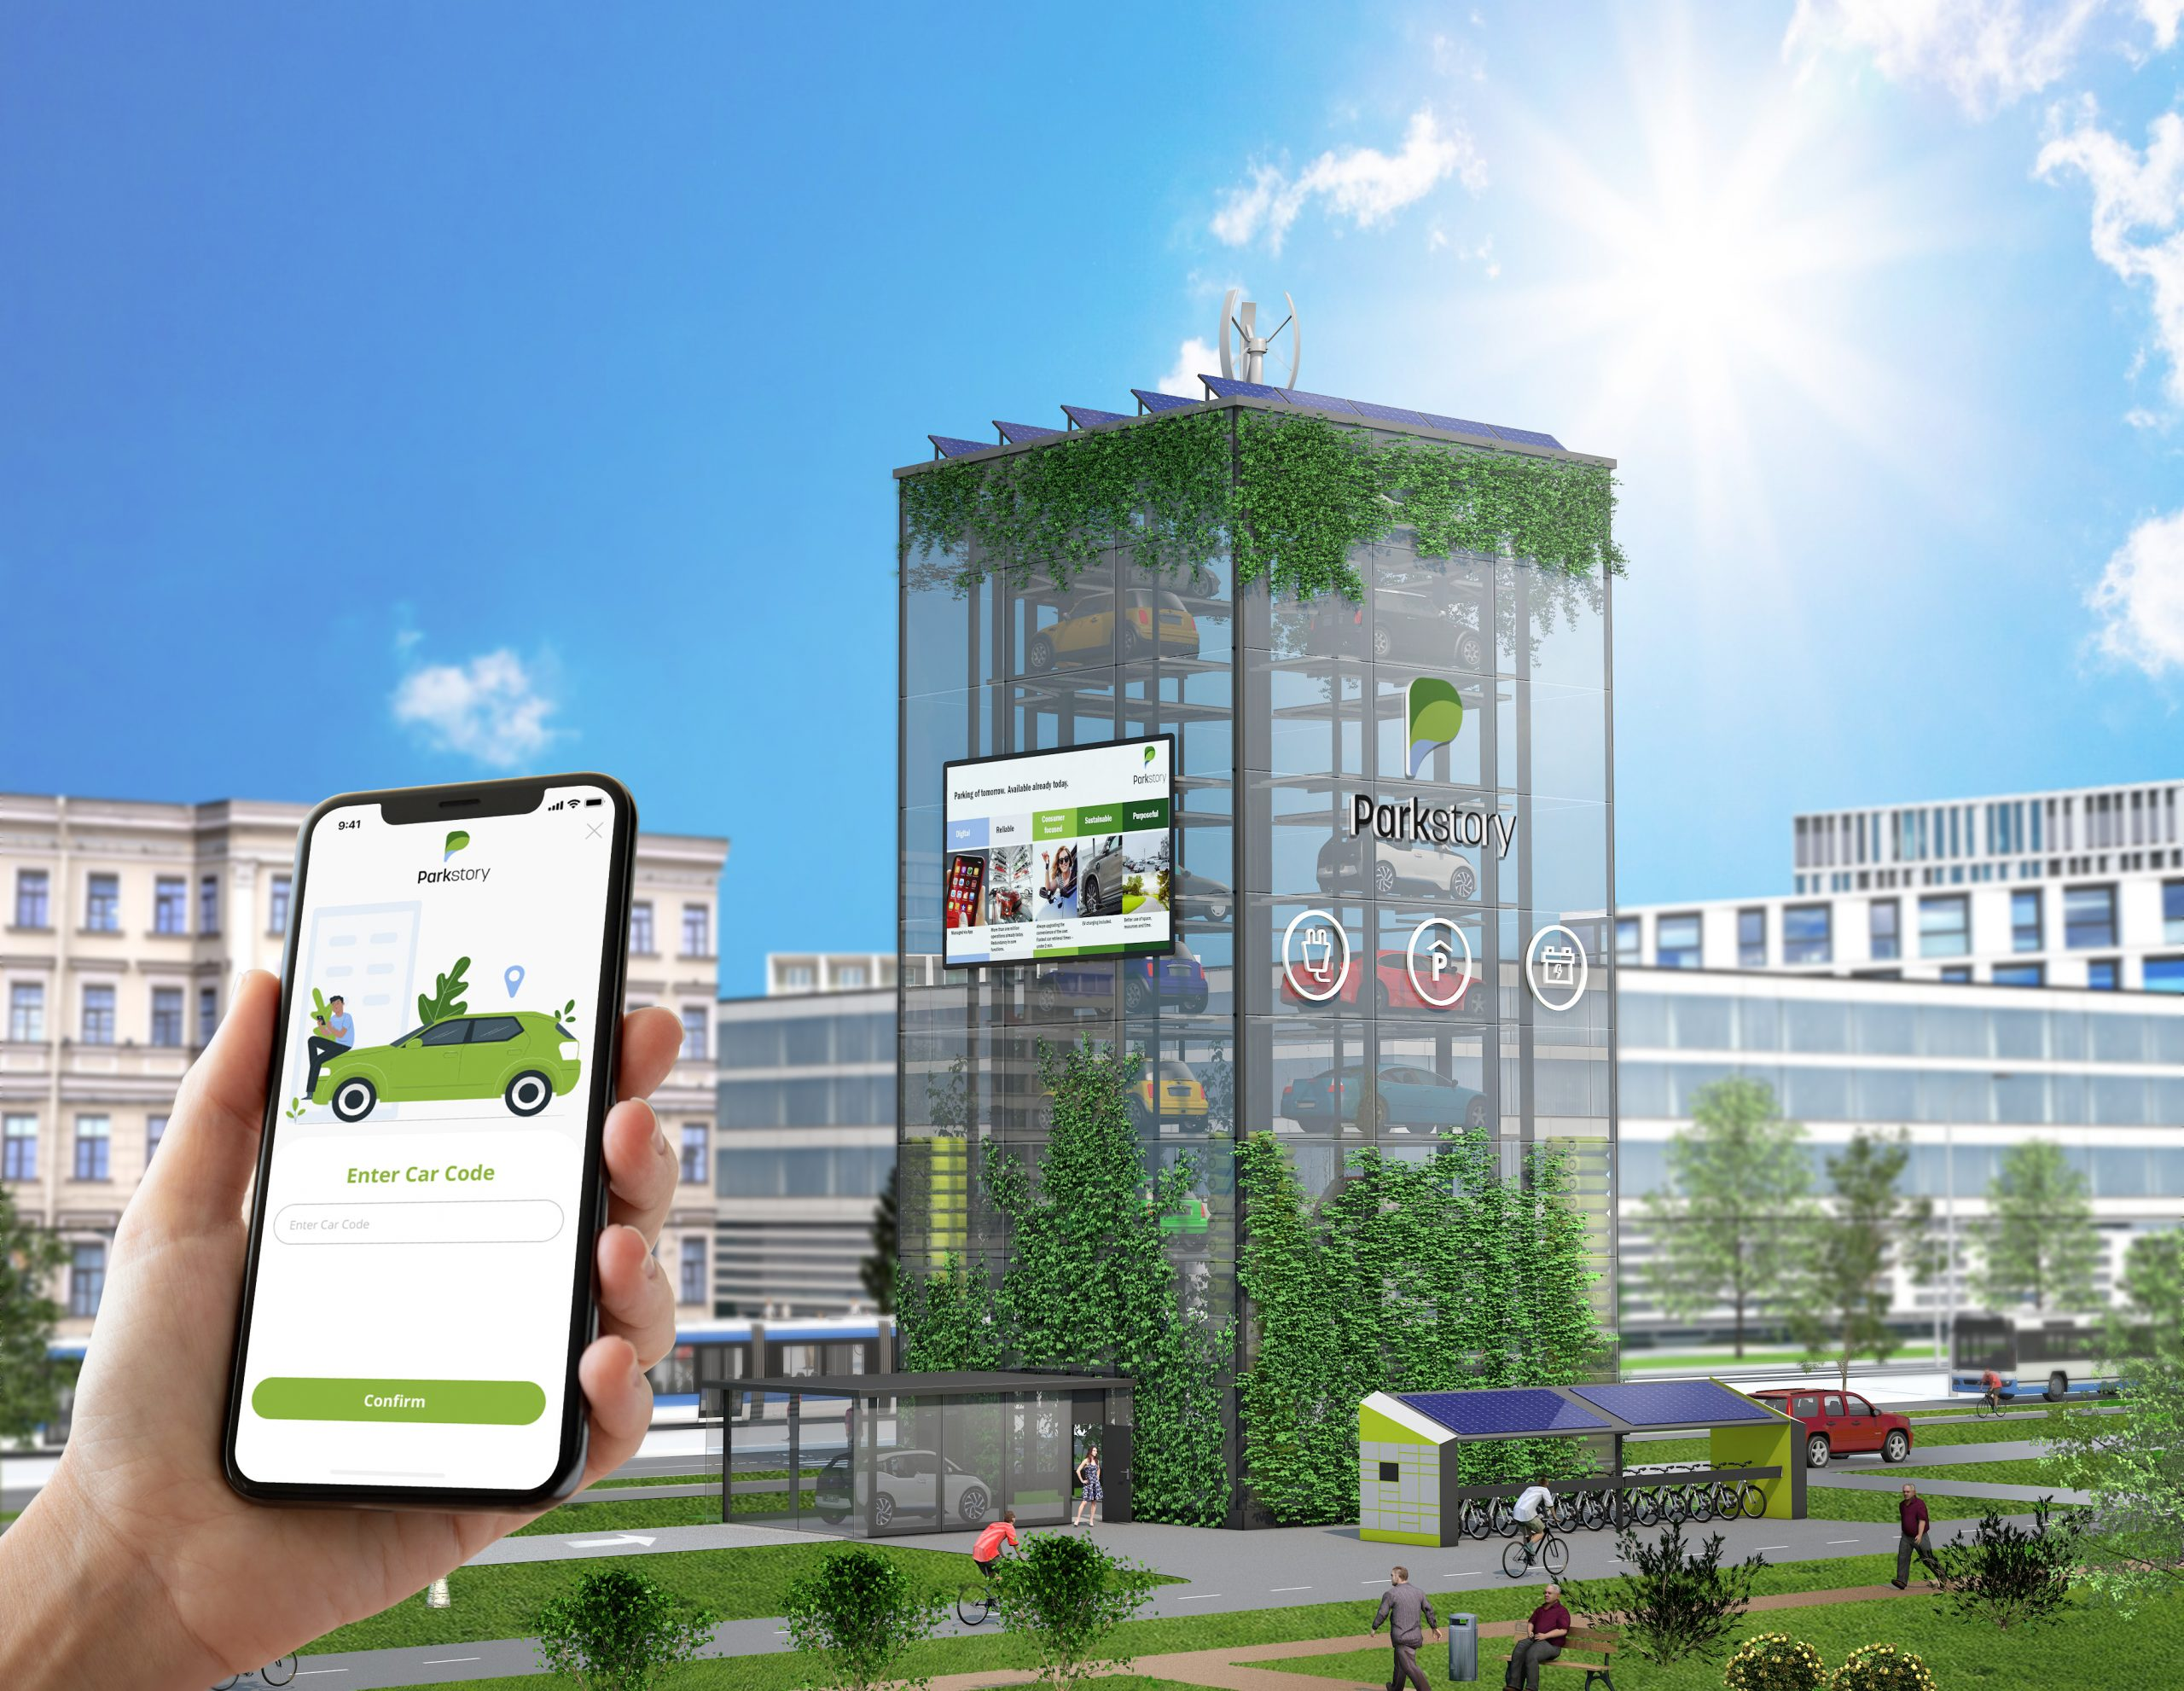 Parkstory App and parktower